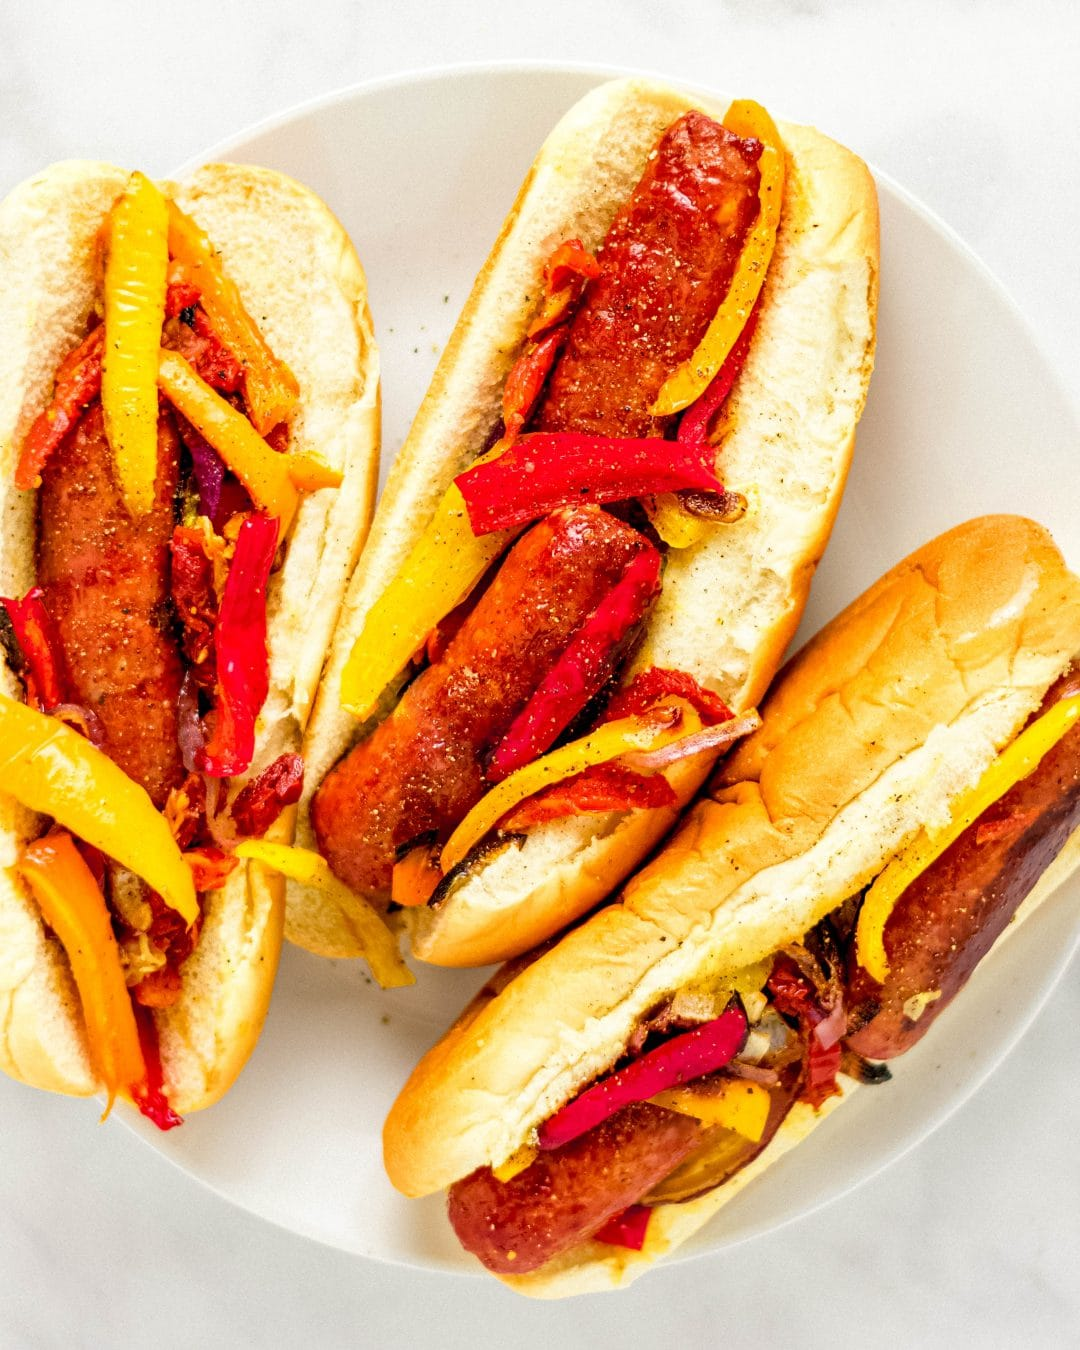 three buns with sausage and peppers on a plate